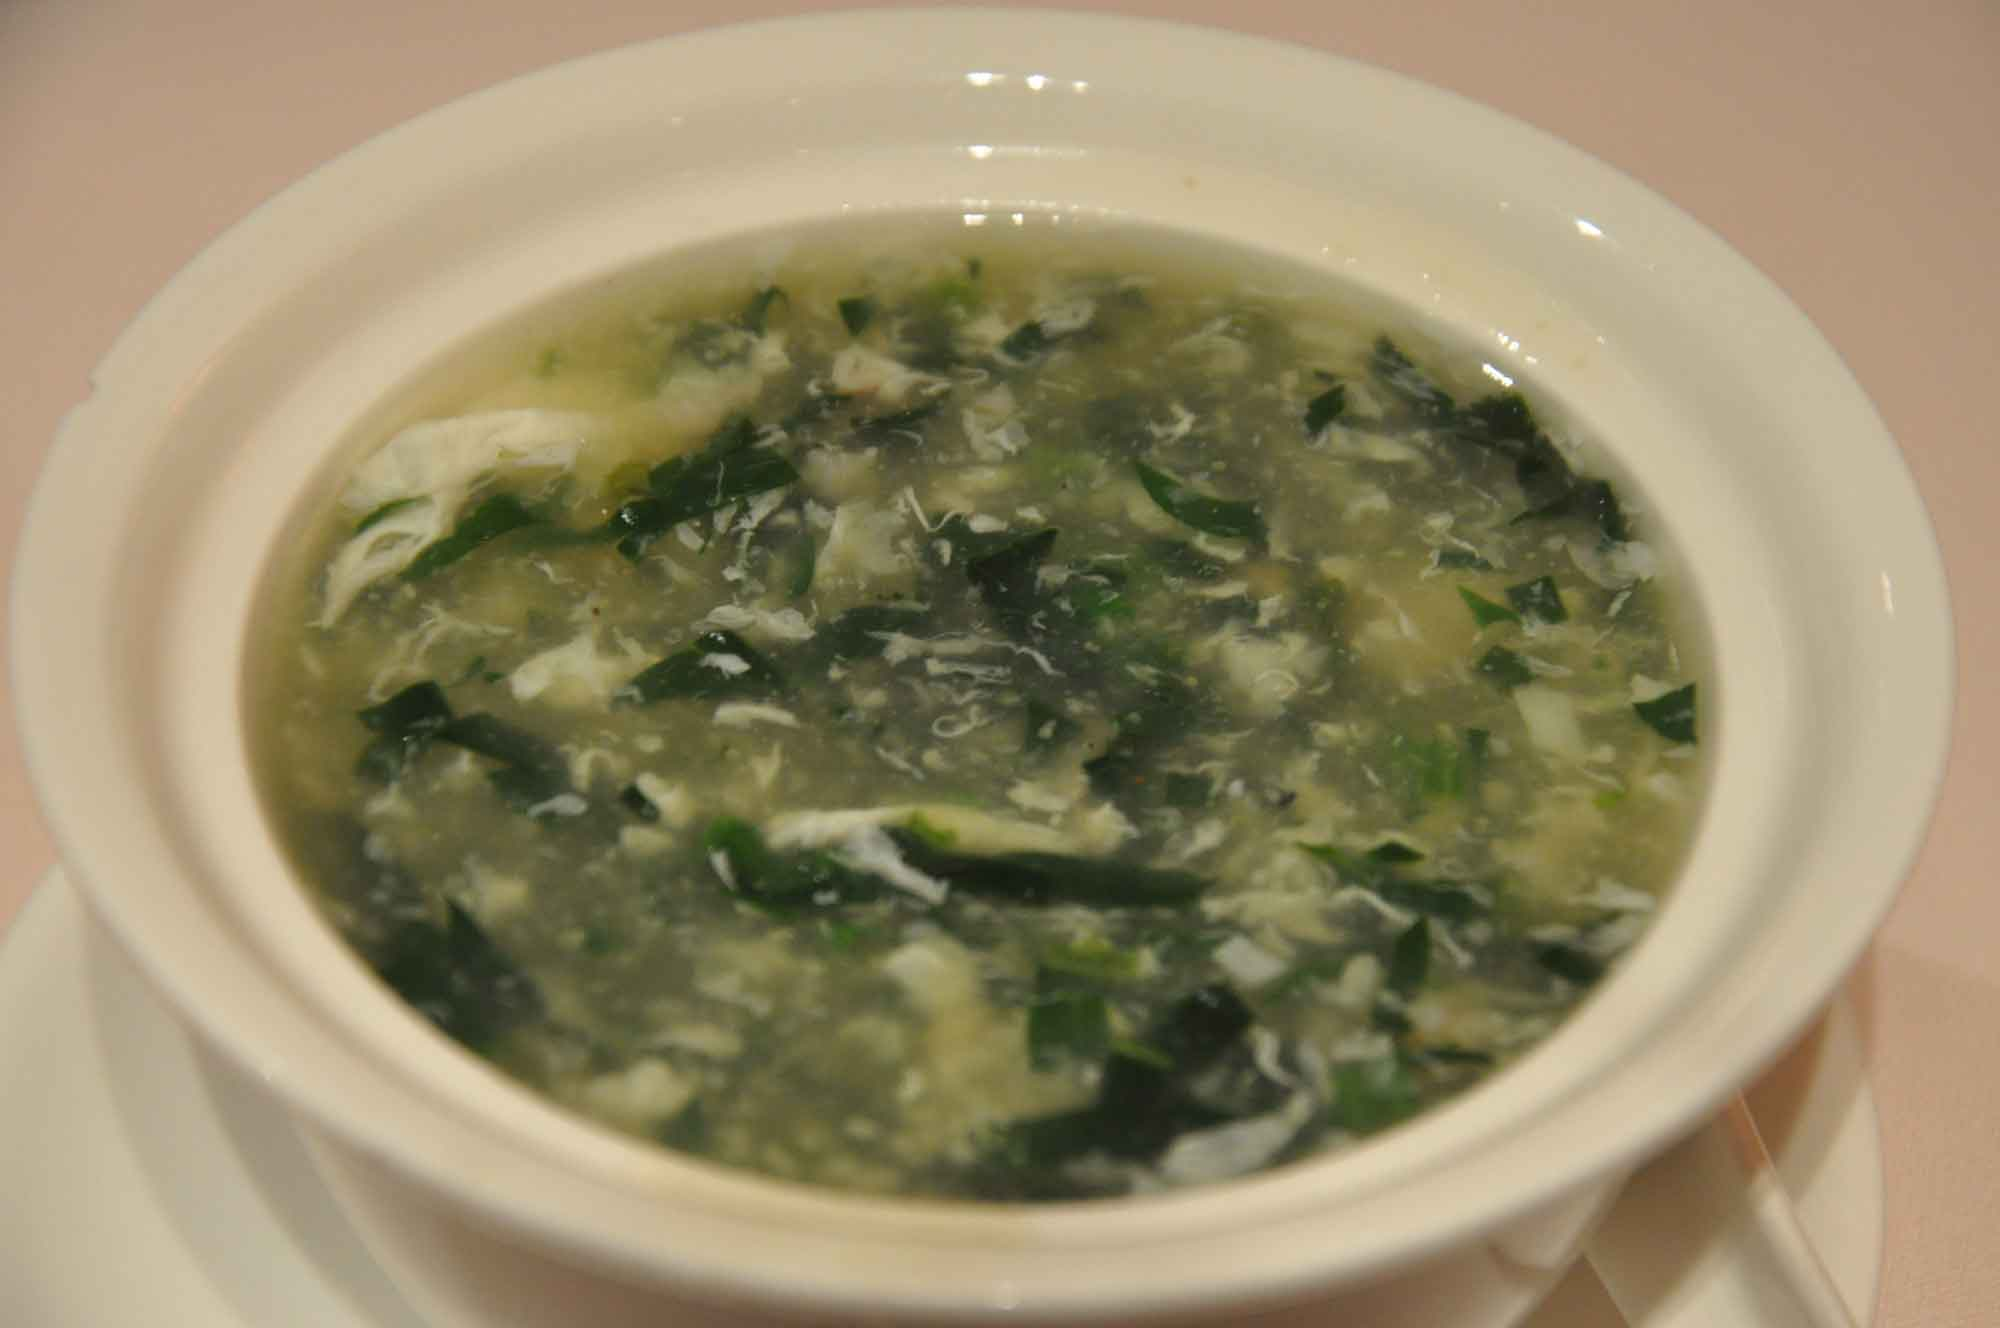 Catalpa Garden spinach soup